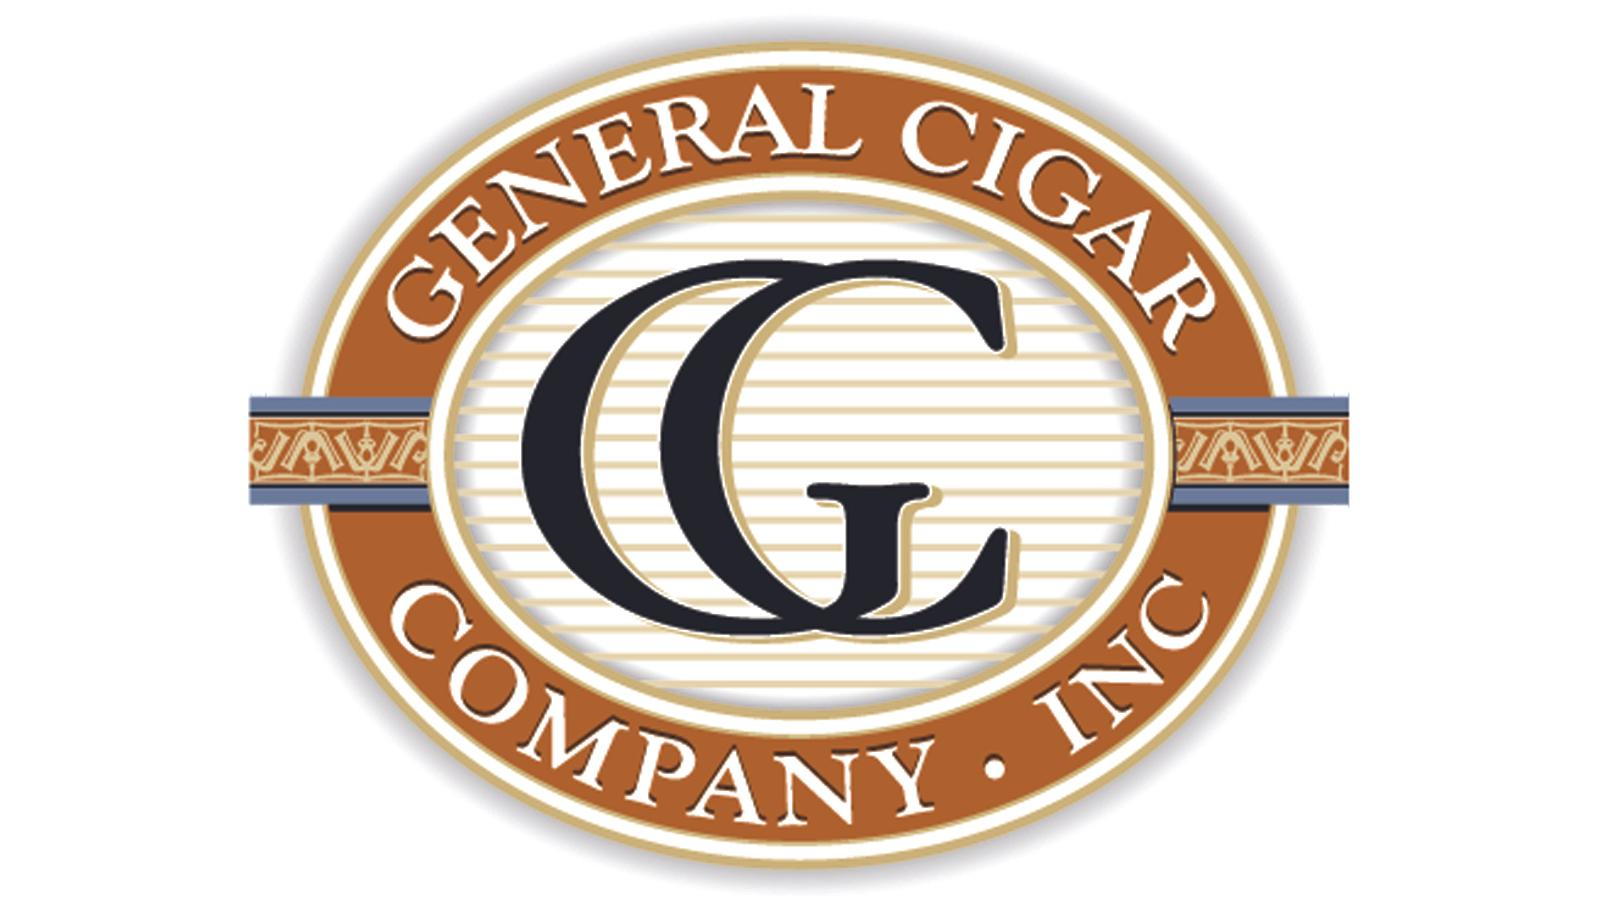 New Leaders For General Cigar Co.